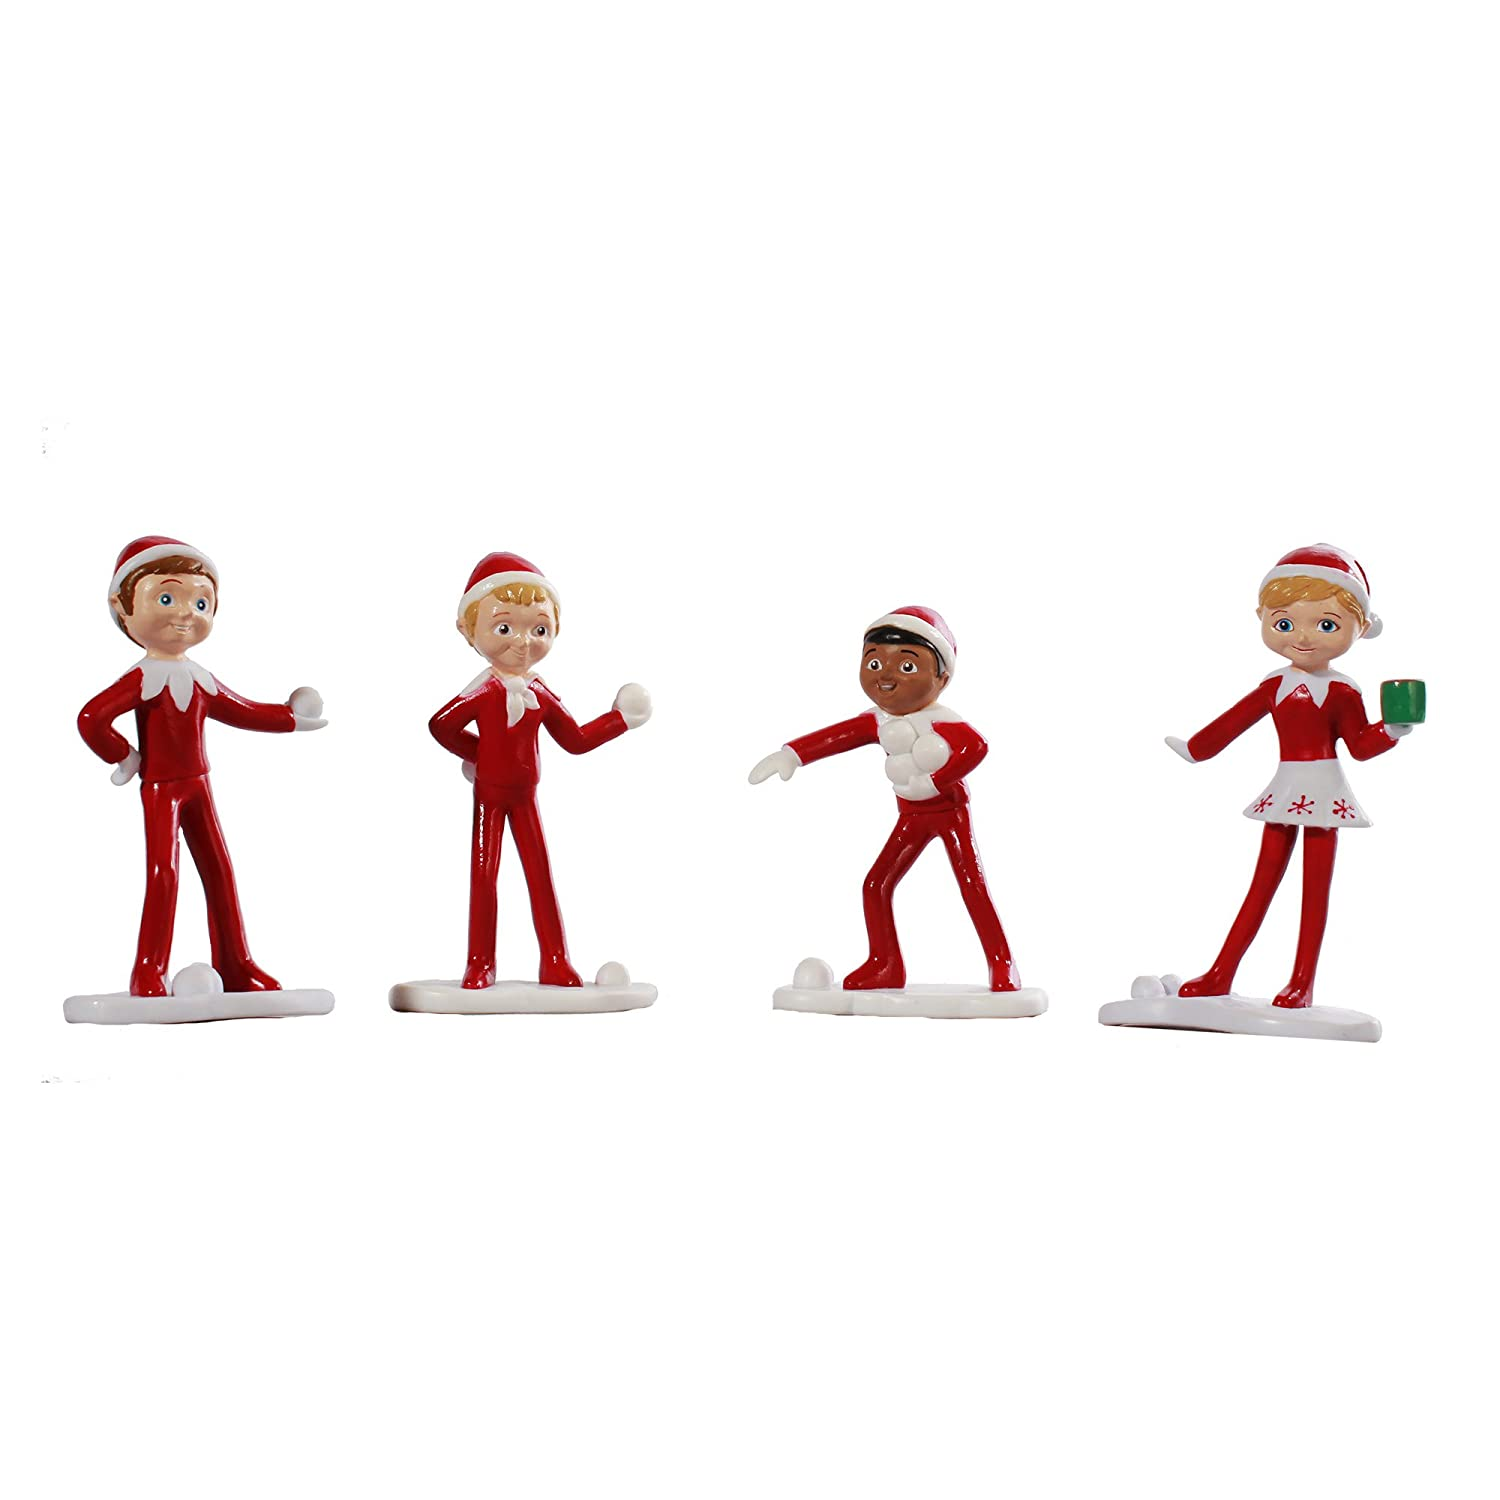 Elf on the Shelf: An Elf's Story Elf Figurines, Set of 4